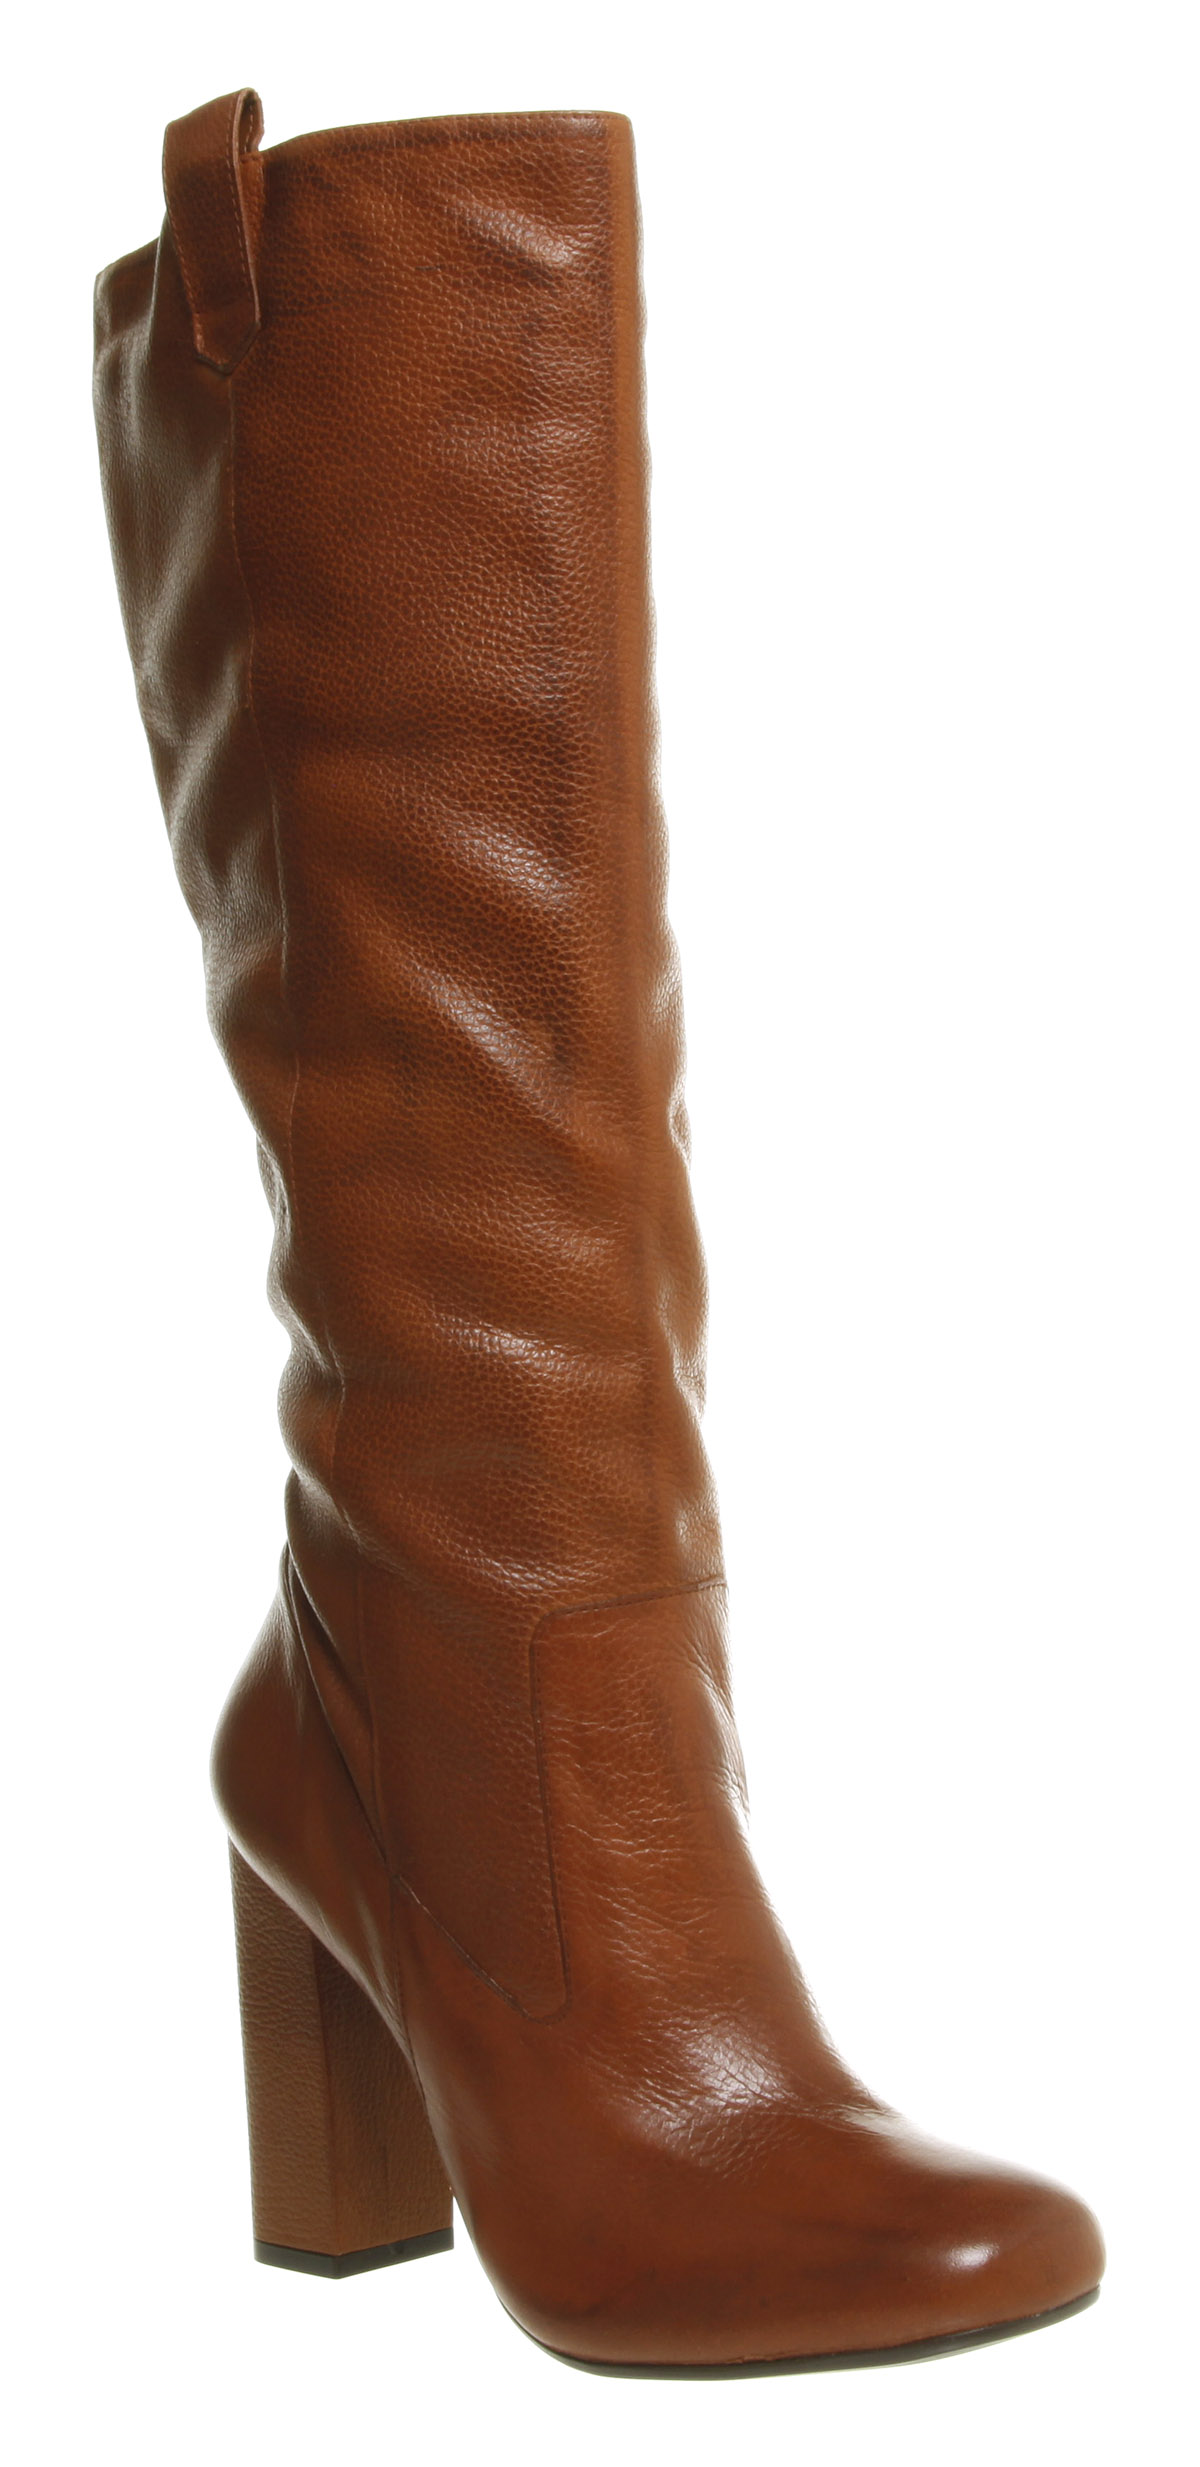 Women's Office Johnston Knee High Square Toe Tan Leather Boots | eBay